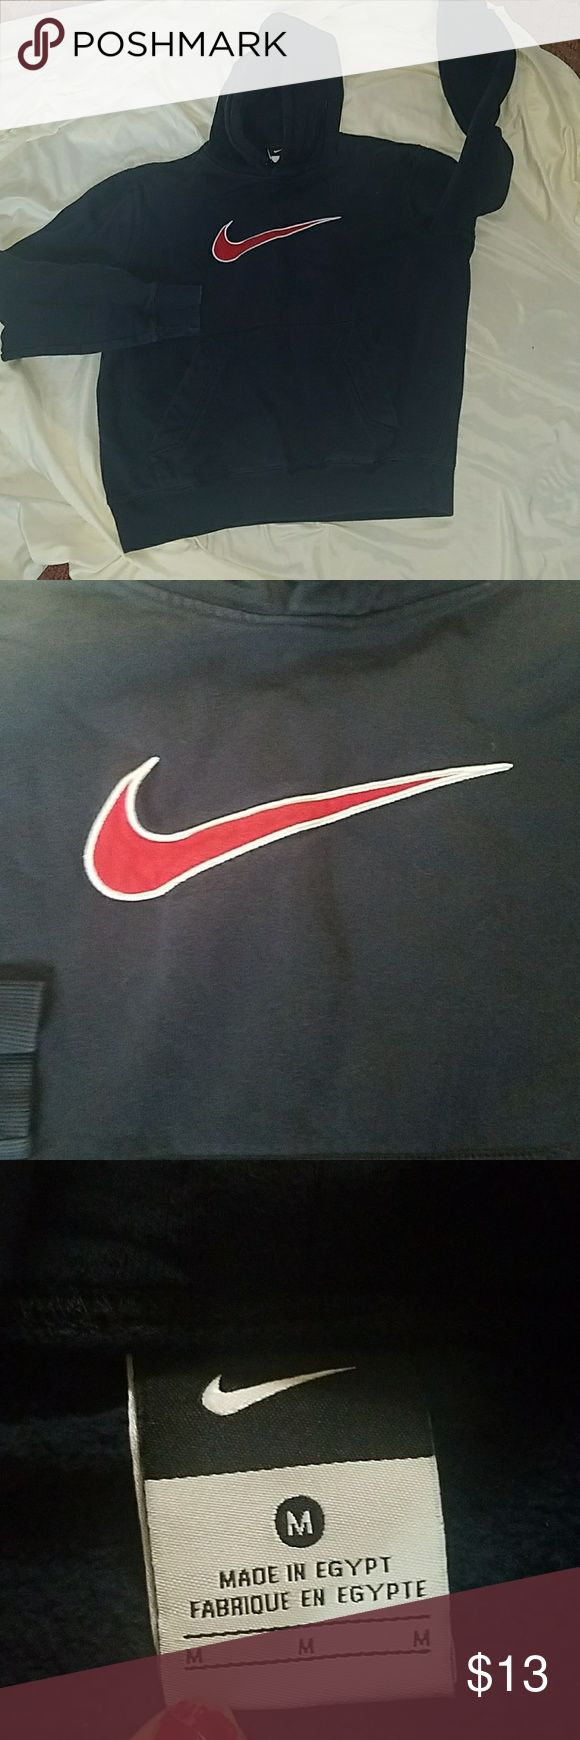 Final price Boys navy blue nike sweatshirt Boys navy blue nike pull over hoodie sweatshirt size med could fit 10 to 12 best I would say no drawstring Nike Other